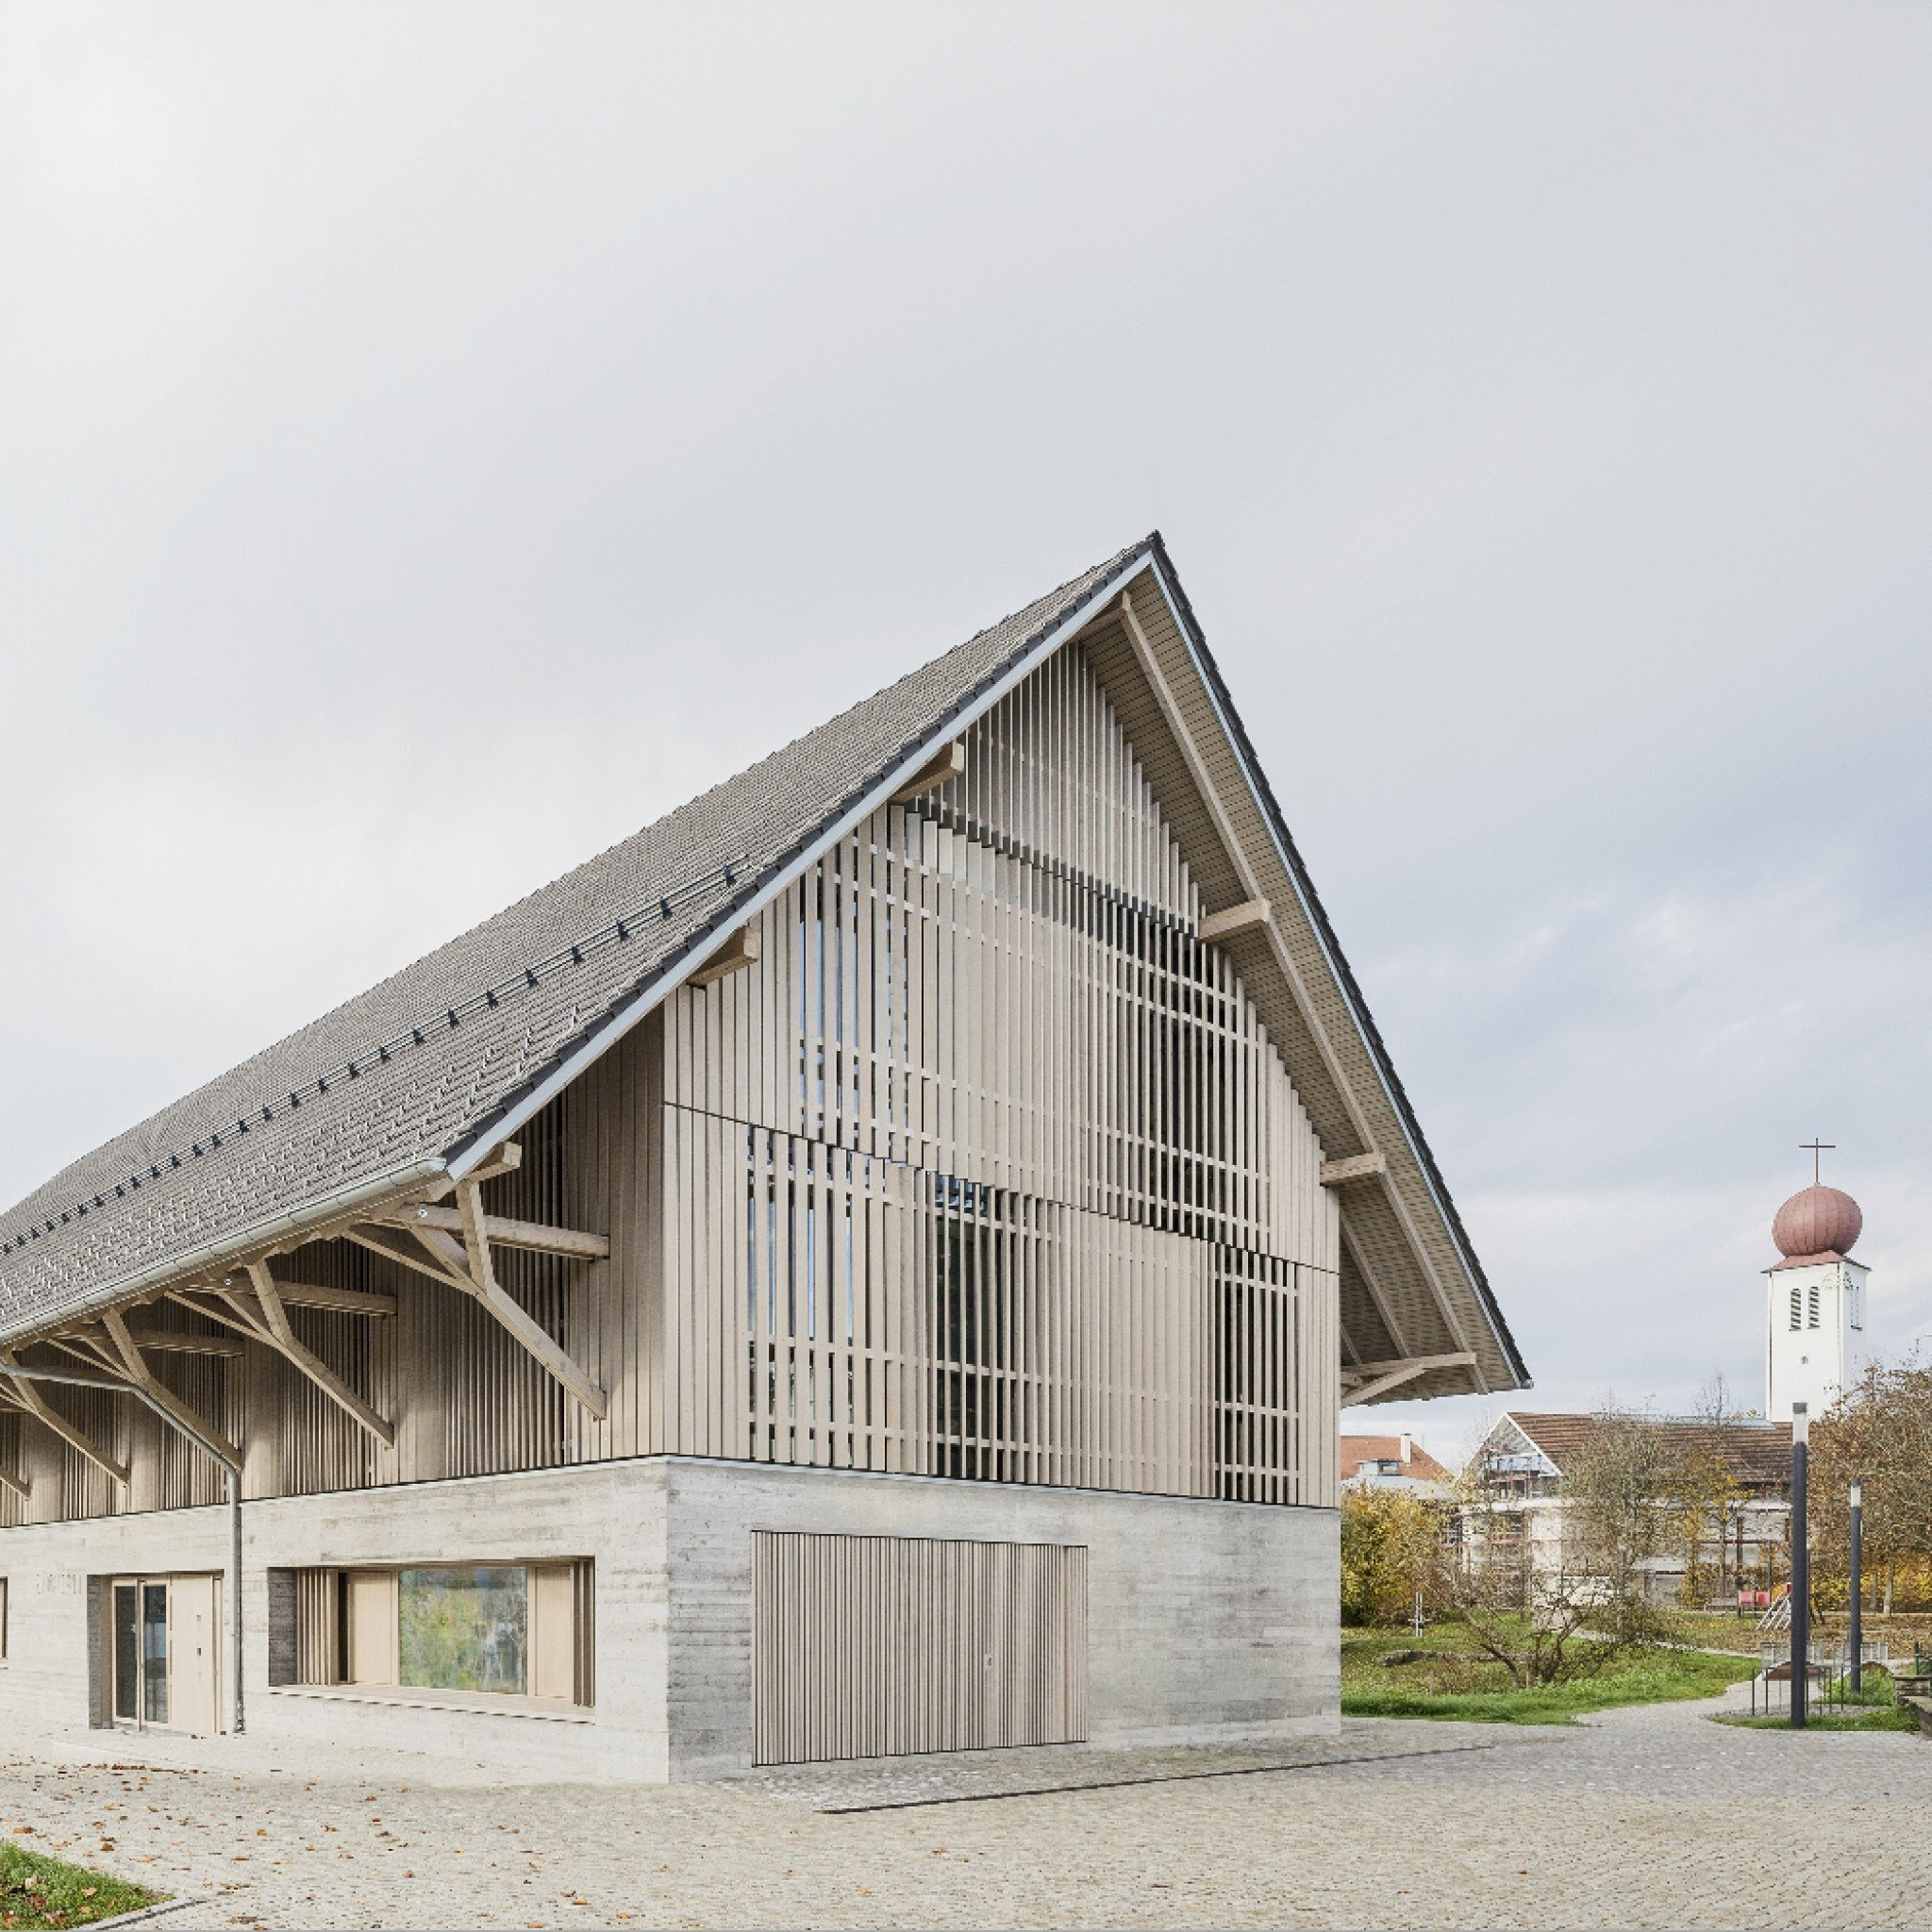 Library Kressbronn in Kressbronn am Bodensee, Germany, by Steimle Architekten